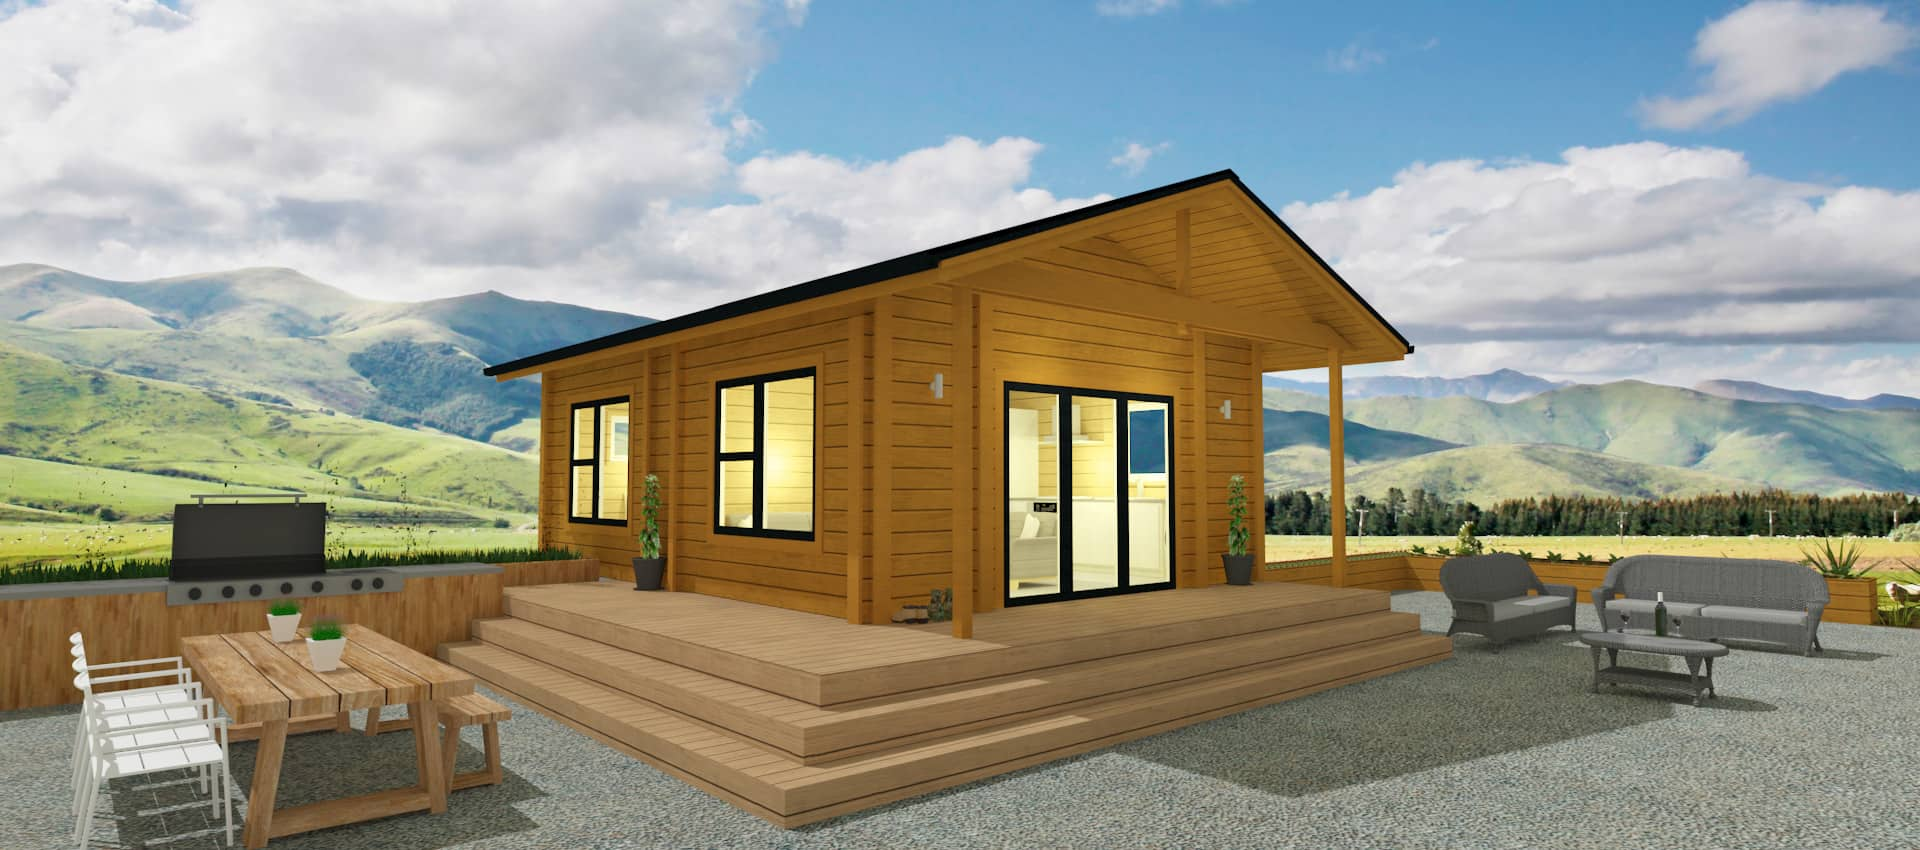 Granny flats chalets tiny homes of sustainably grown nz for Small sustainable house plans